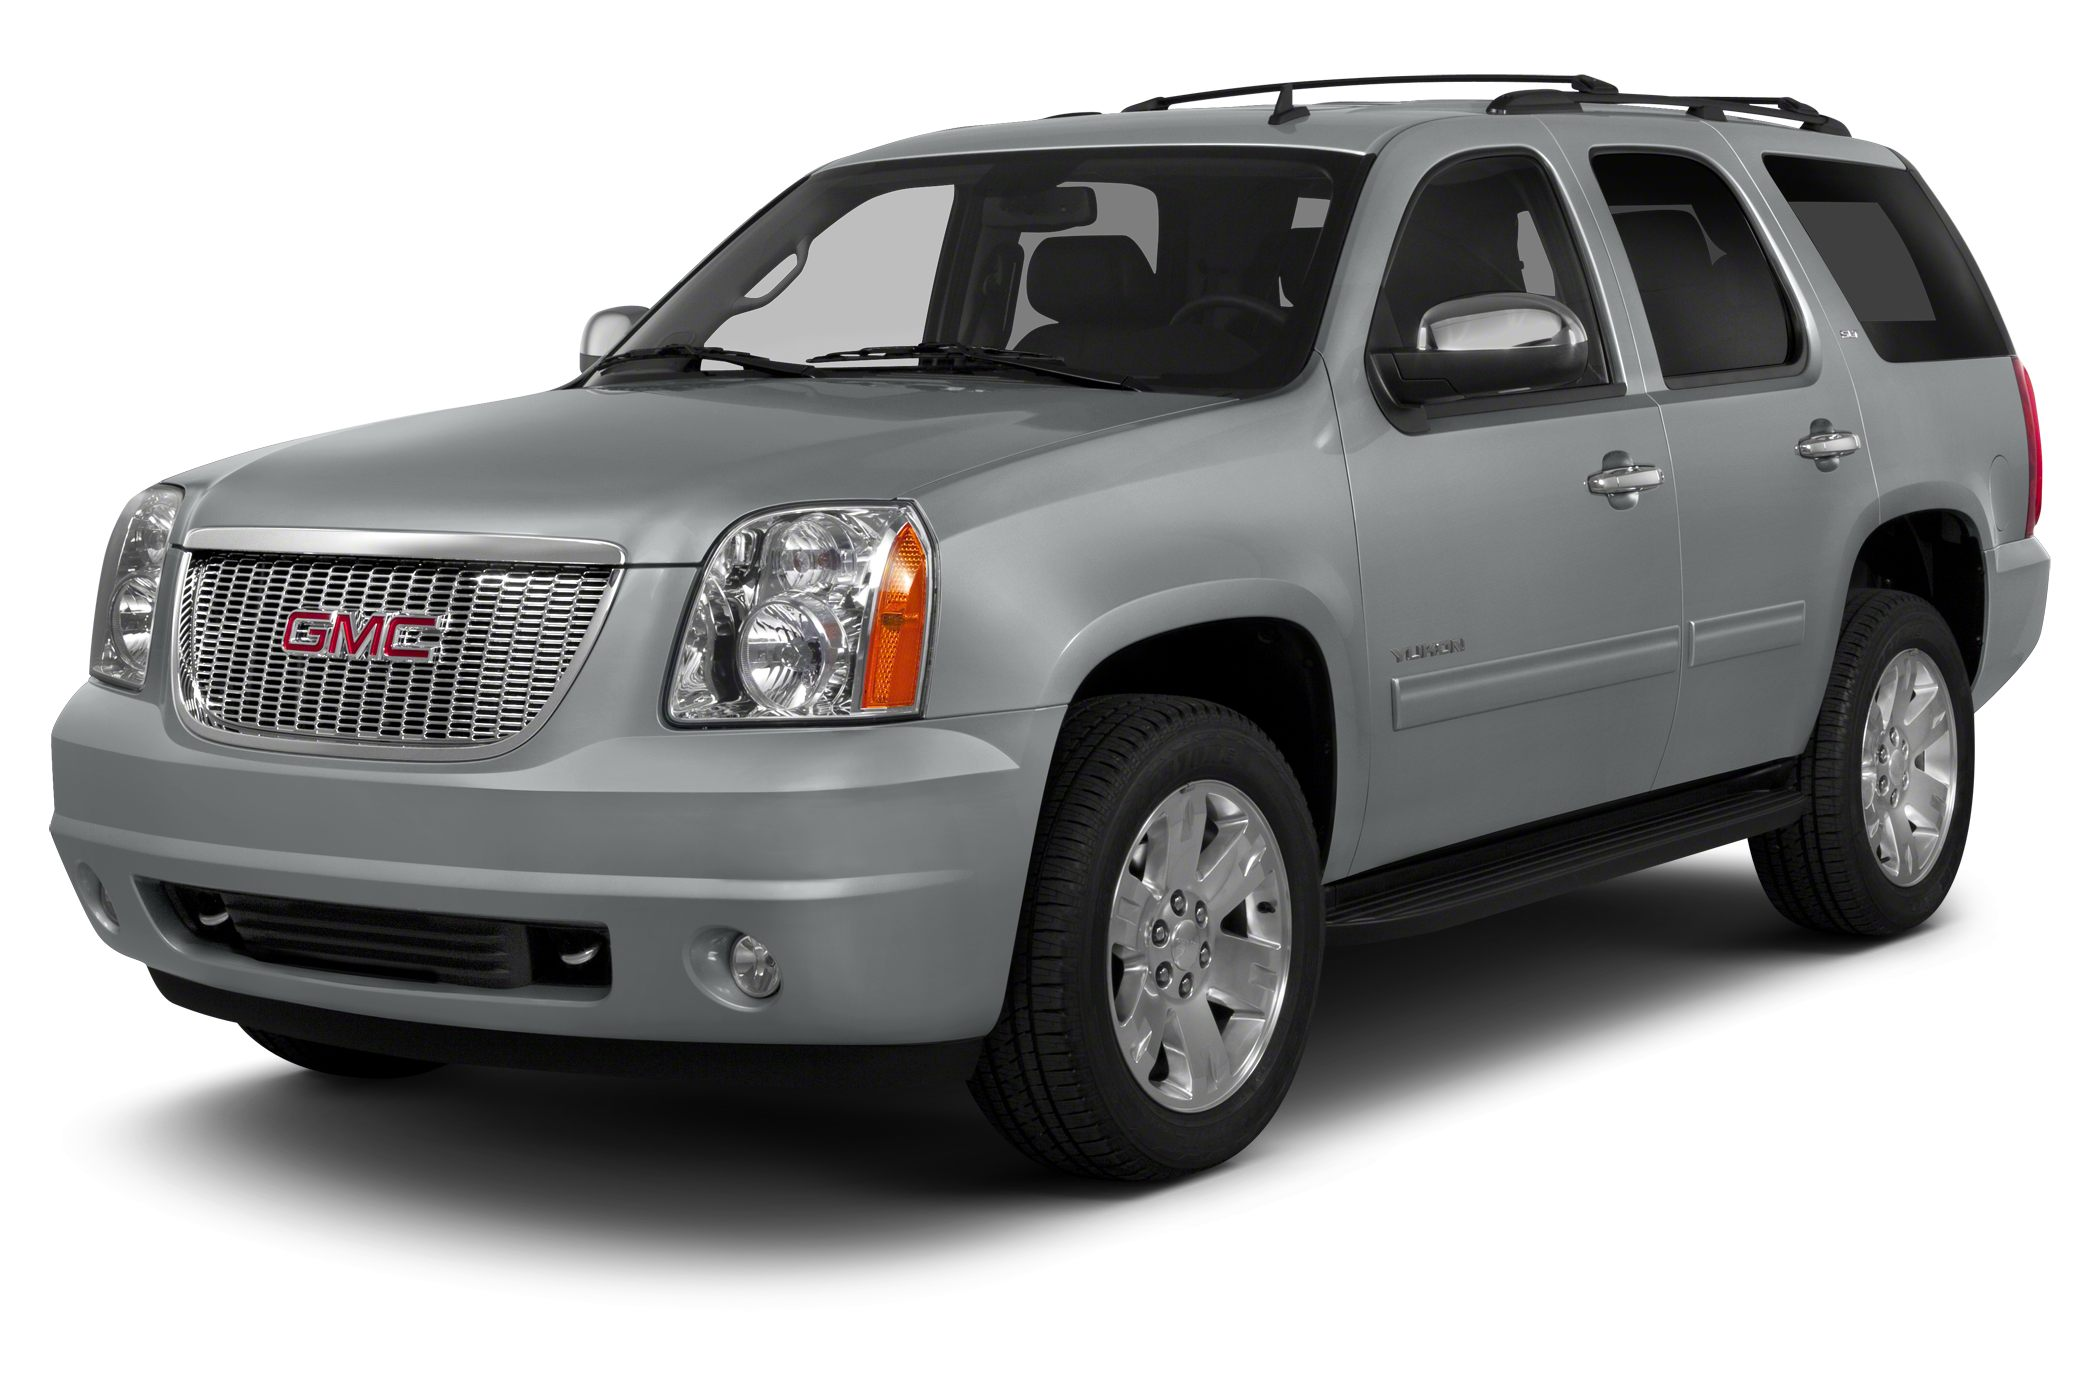 2014 GMC Yukon SLT SUV for sale in Alamogordo for $39,826 with 21,316 miles.